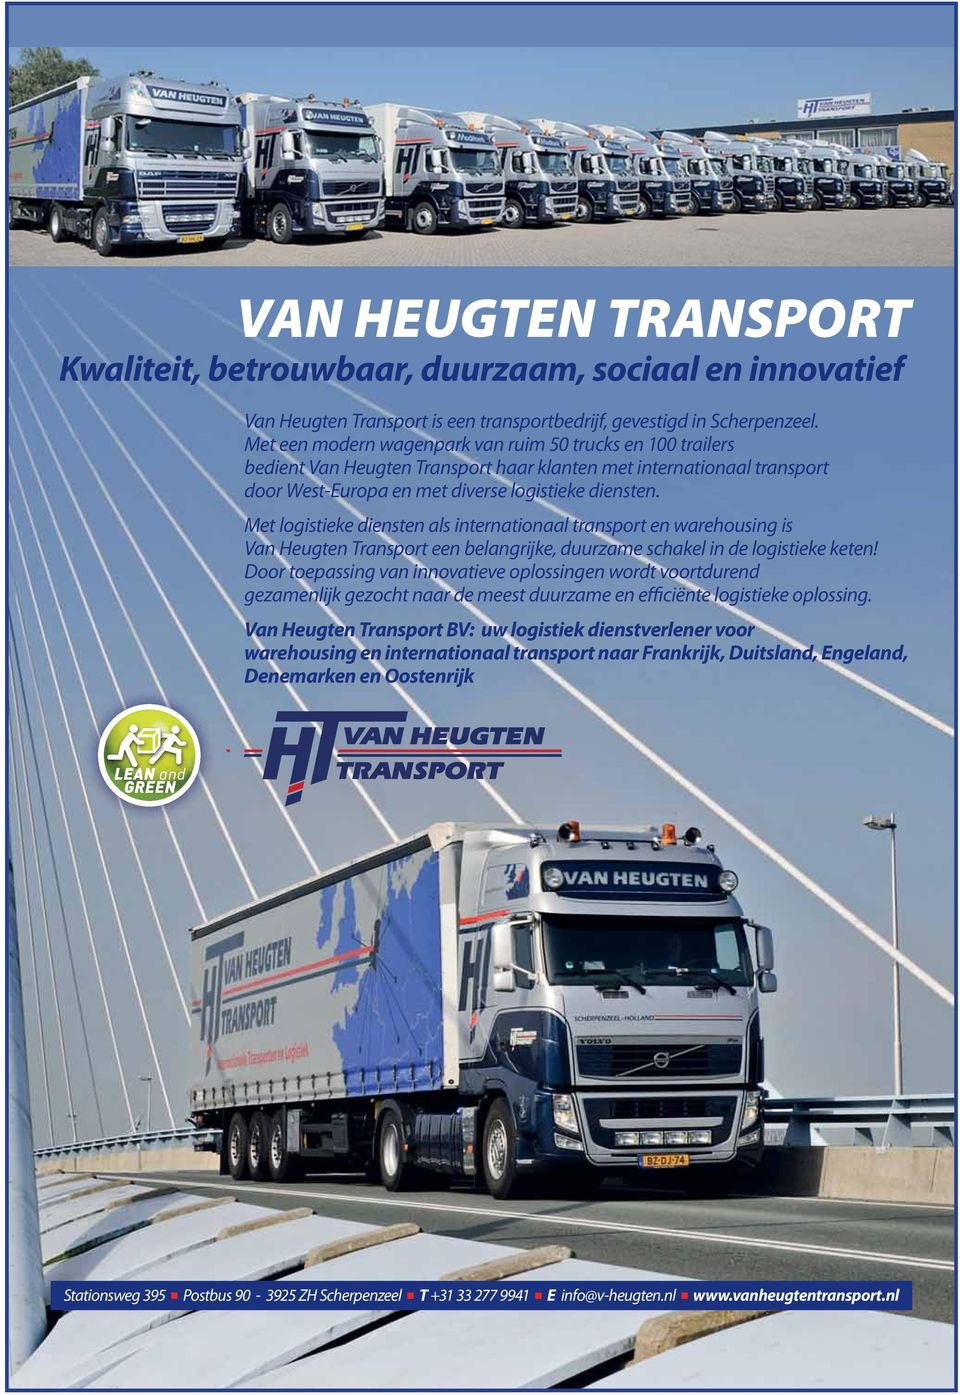 Met logistieke diensten als internationaal transport en warehousing is Van Heugten Transport een belangrijke, duurzame schakel in de logistieke keten!